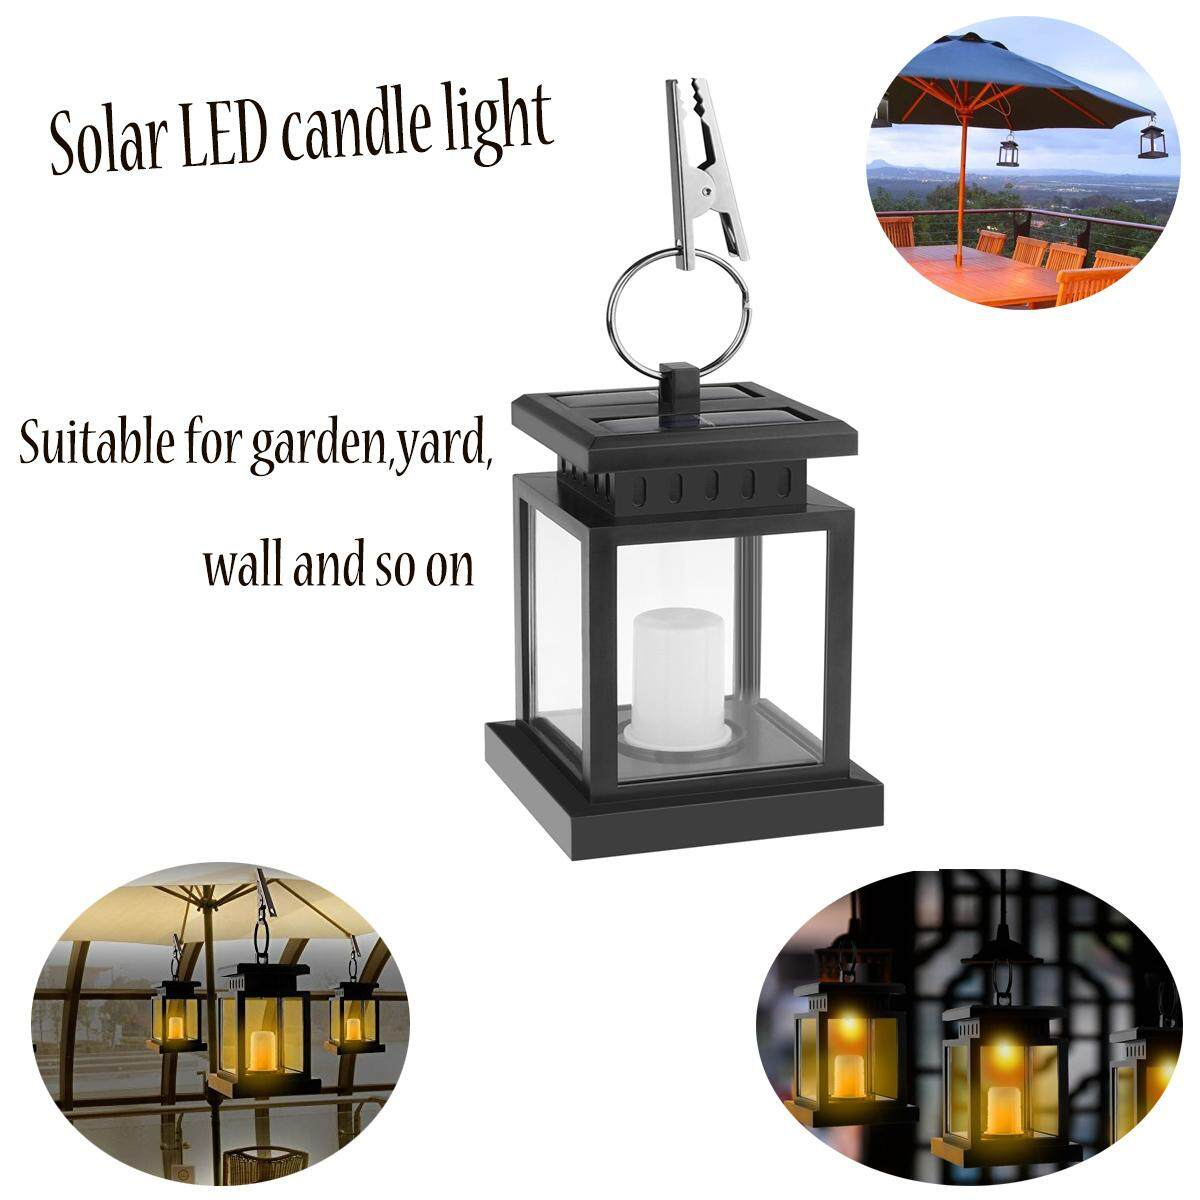 Waterproof Flickering Flameless Solar LED Candle Light Hanging Lantern Smokeless for Outdoor Garden Yard Lawn Patio Camping Tent